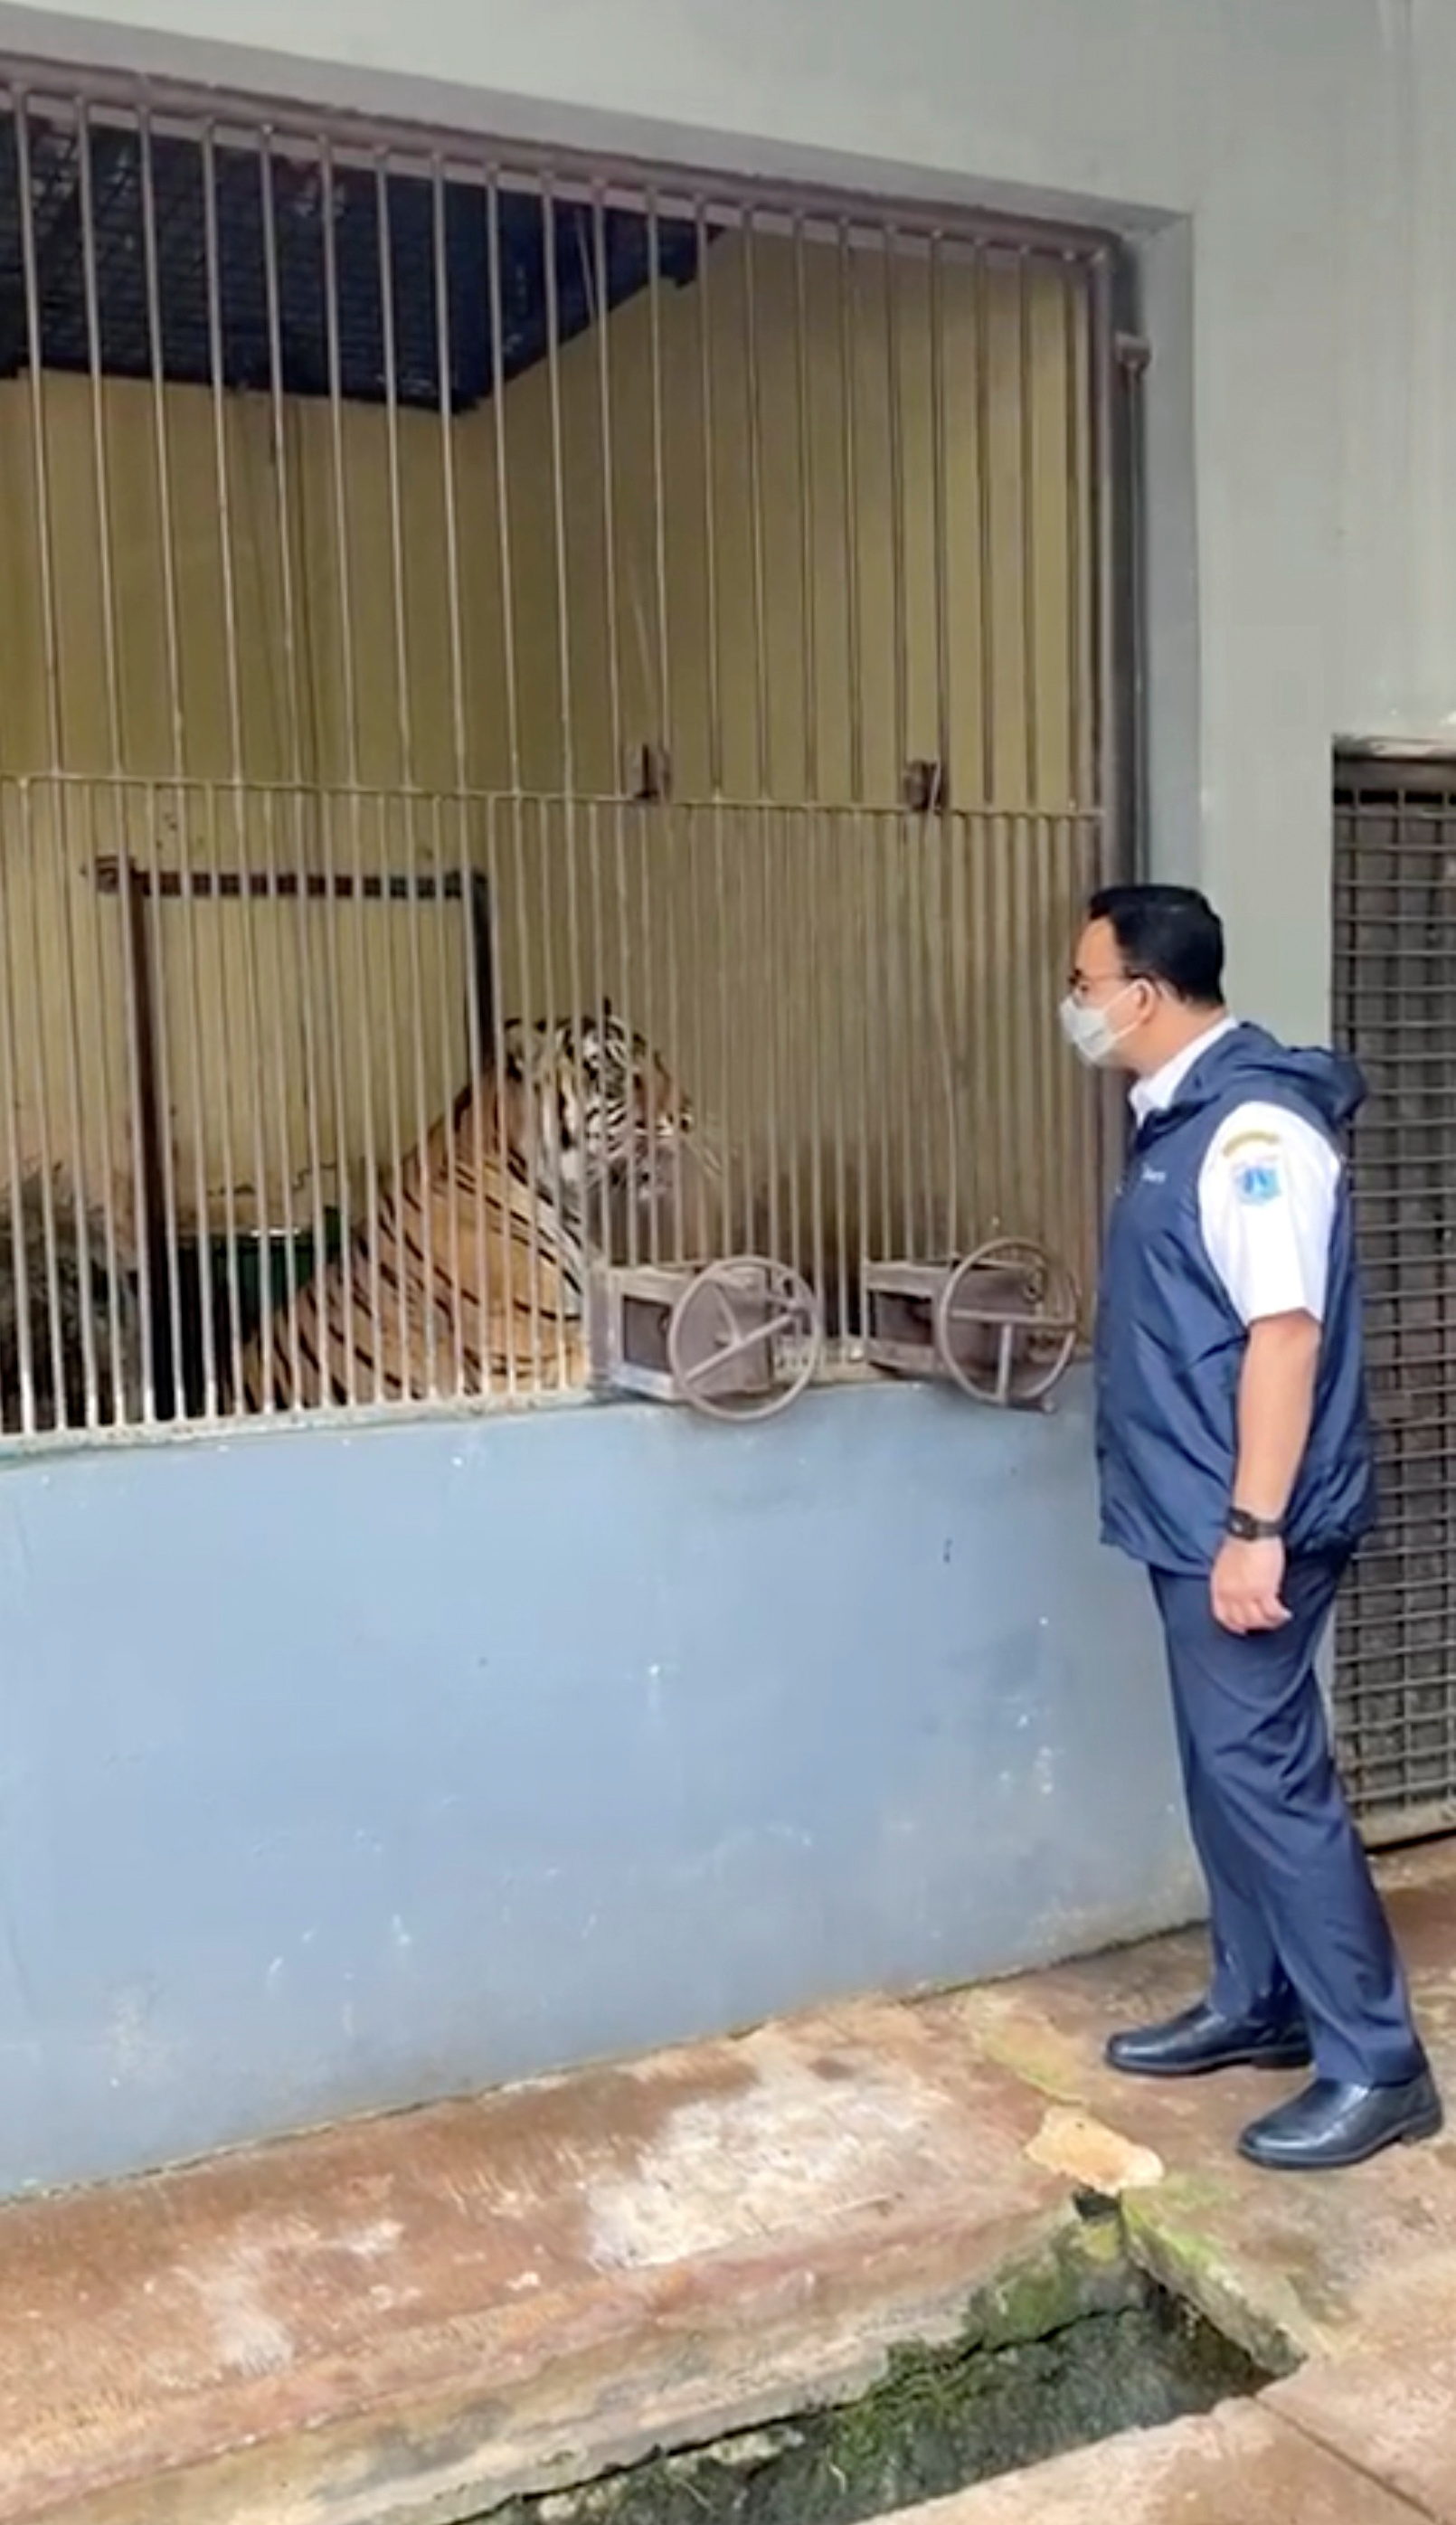 Jakarta Governor Anies Baswedan meets Tino, one of the two Sumatran tigers that recovered from COVID-19, at Ragunan Zoo in Jakarta, Indonesia July 31, 2021 in this still image taken from social media video recorded July 31, 2021.  Jakarta Capital City Government/via REUTERS